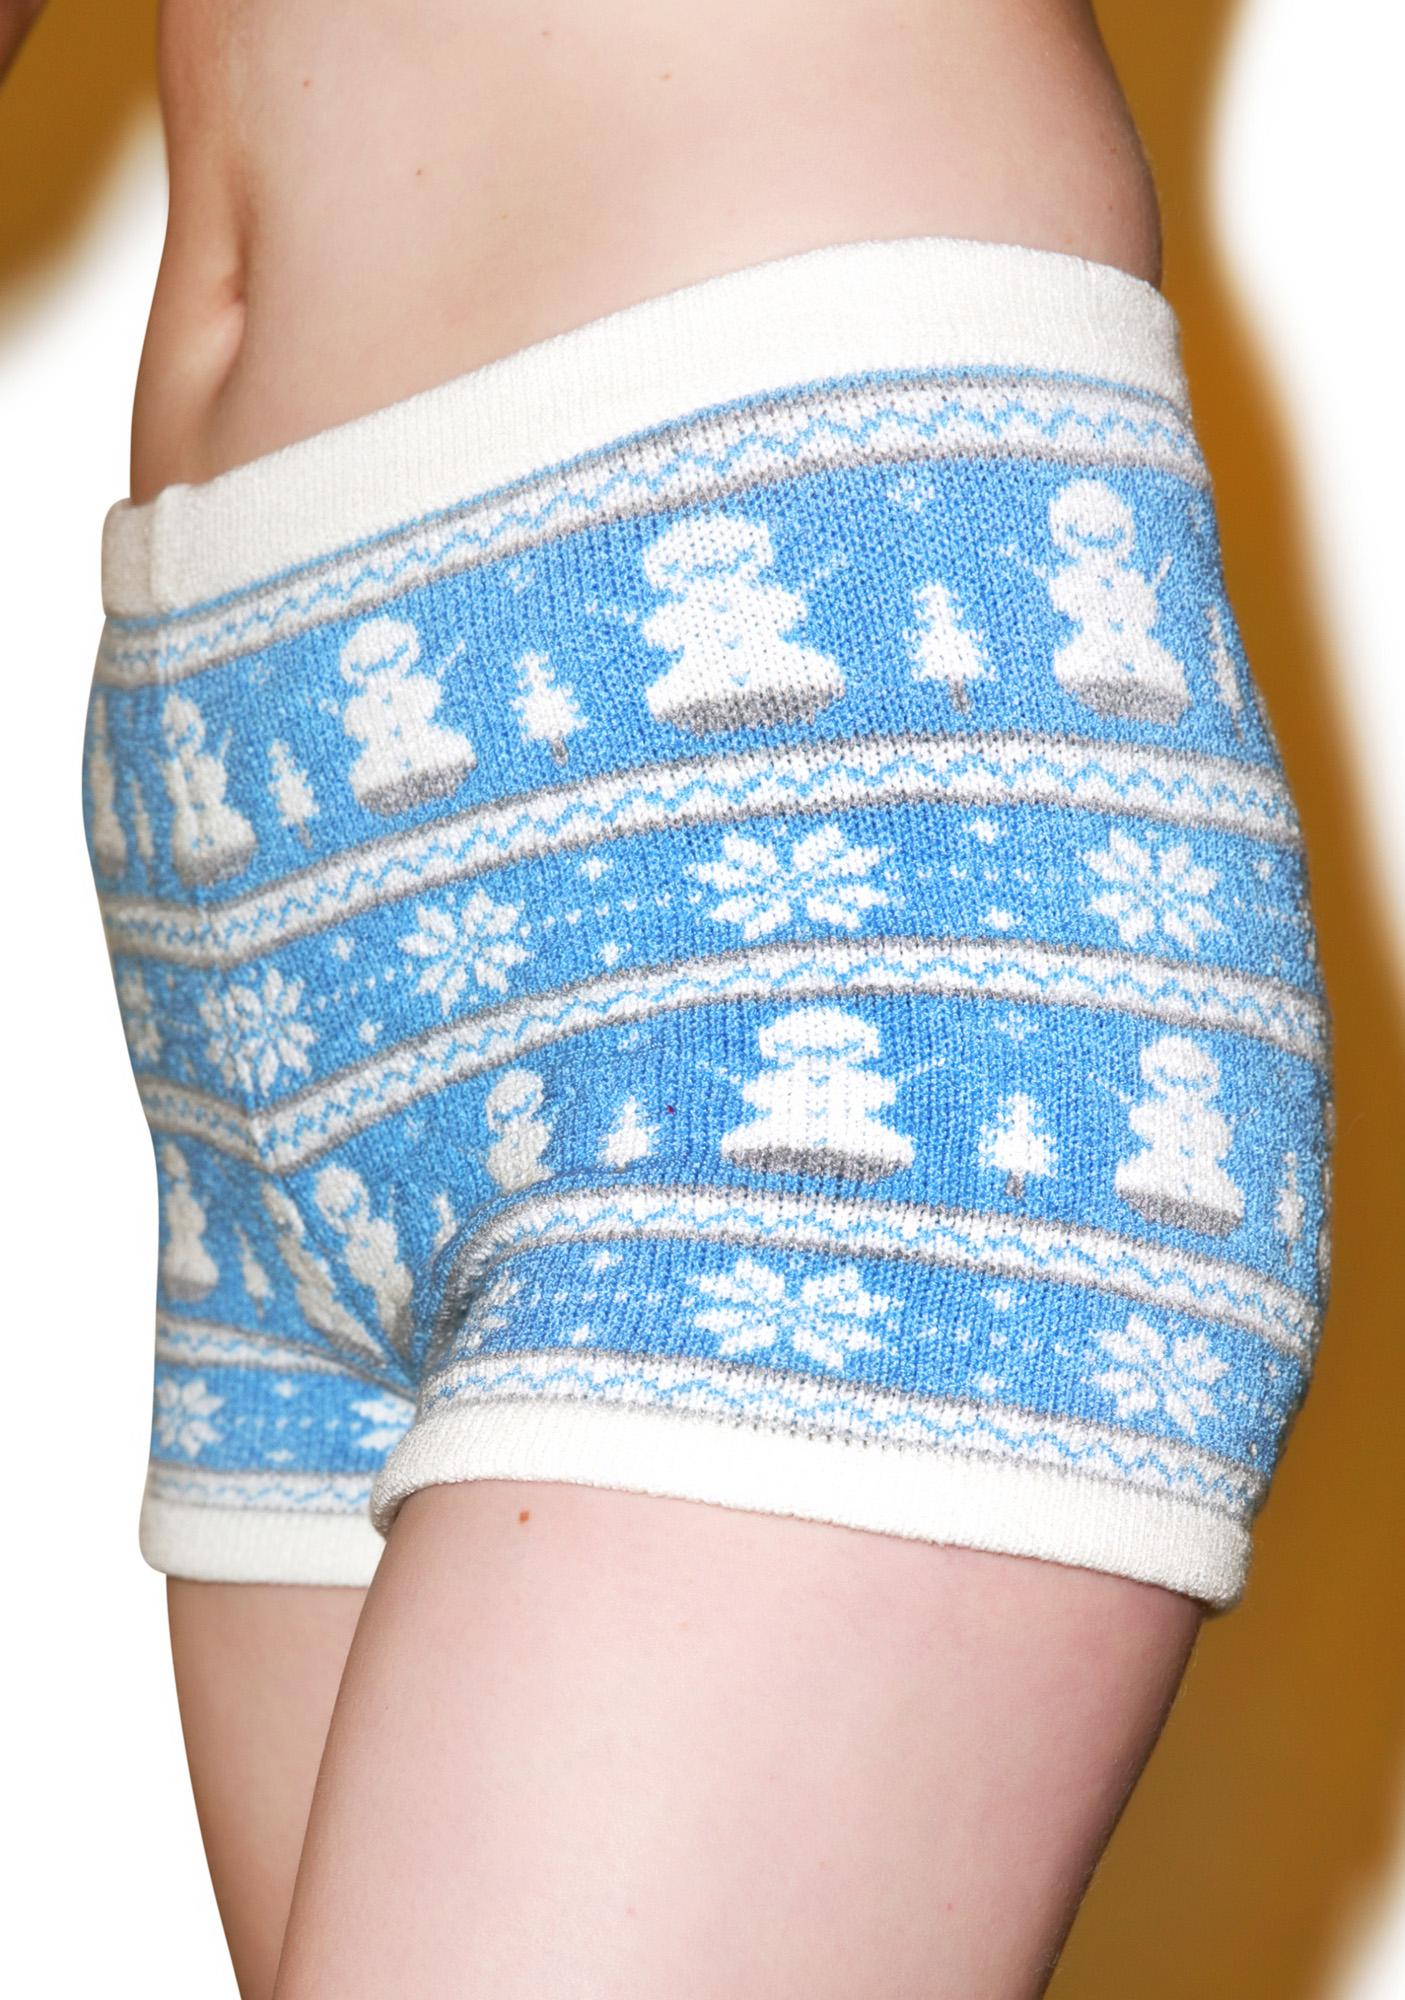 Knitty Kitty Do Yew Want 2 Build A Snowman Boyshorts